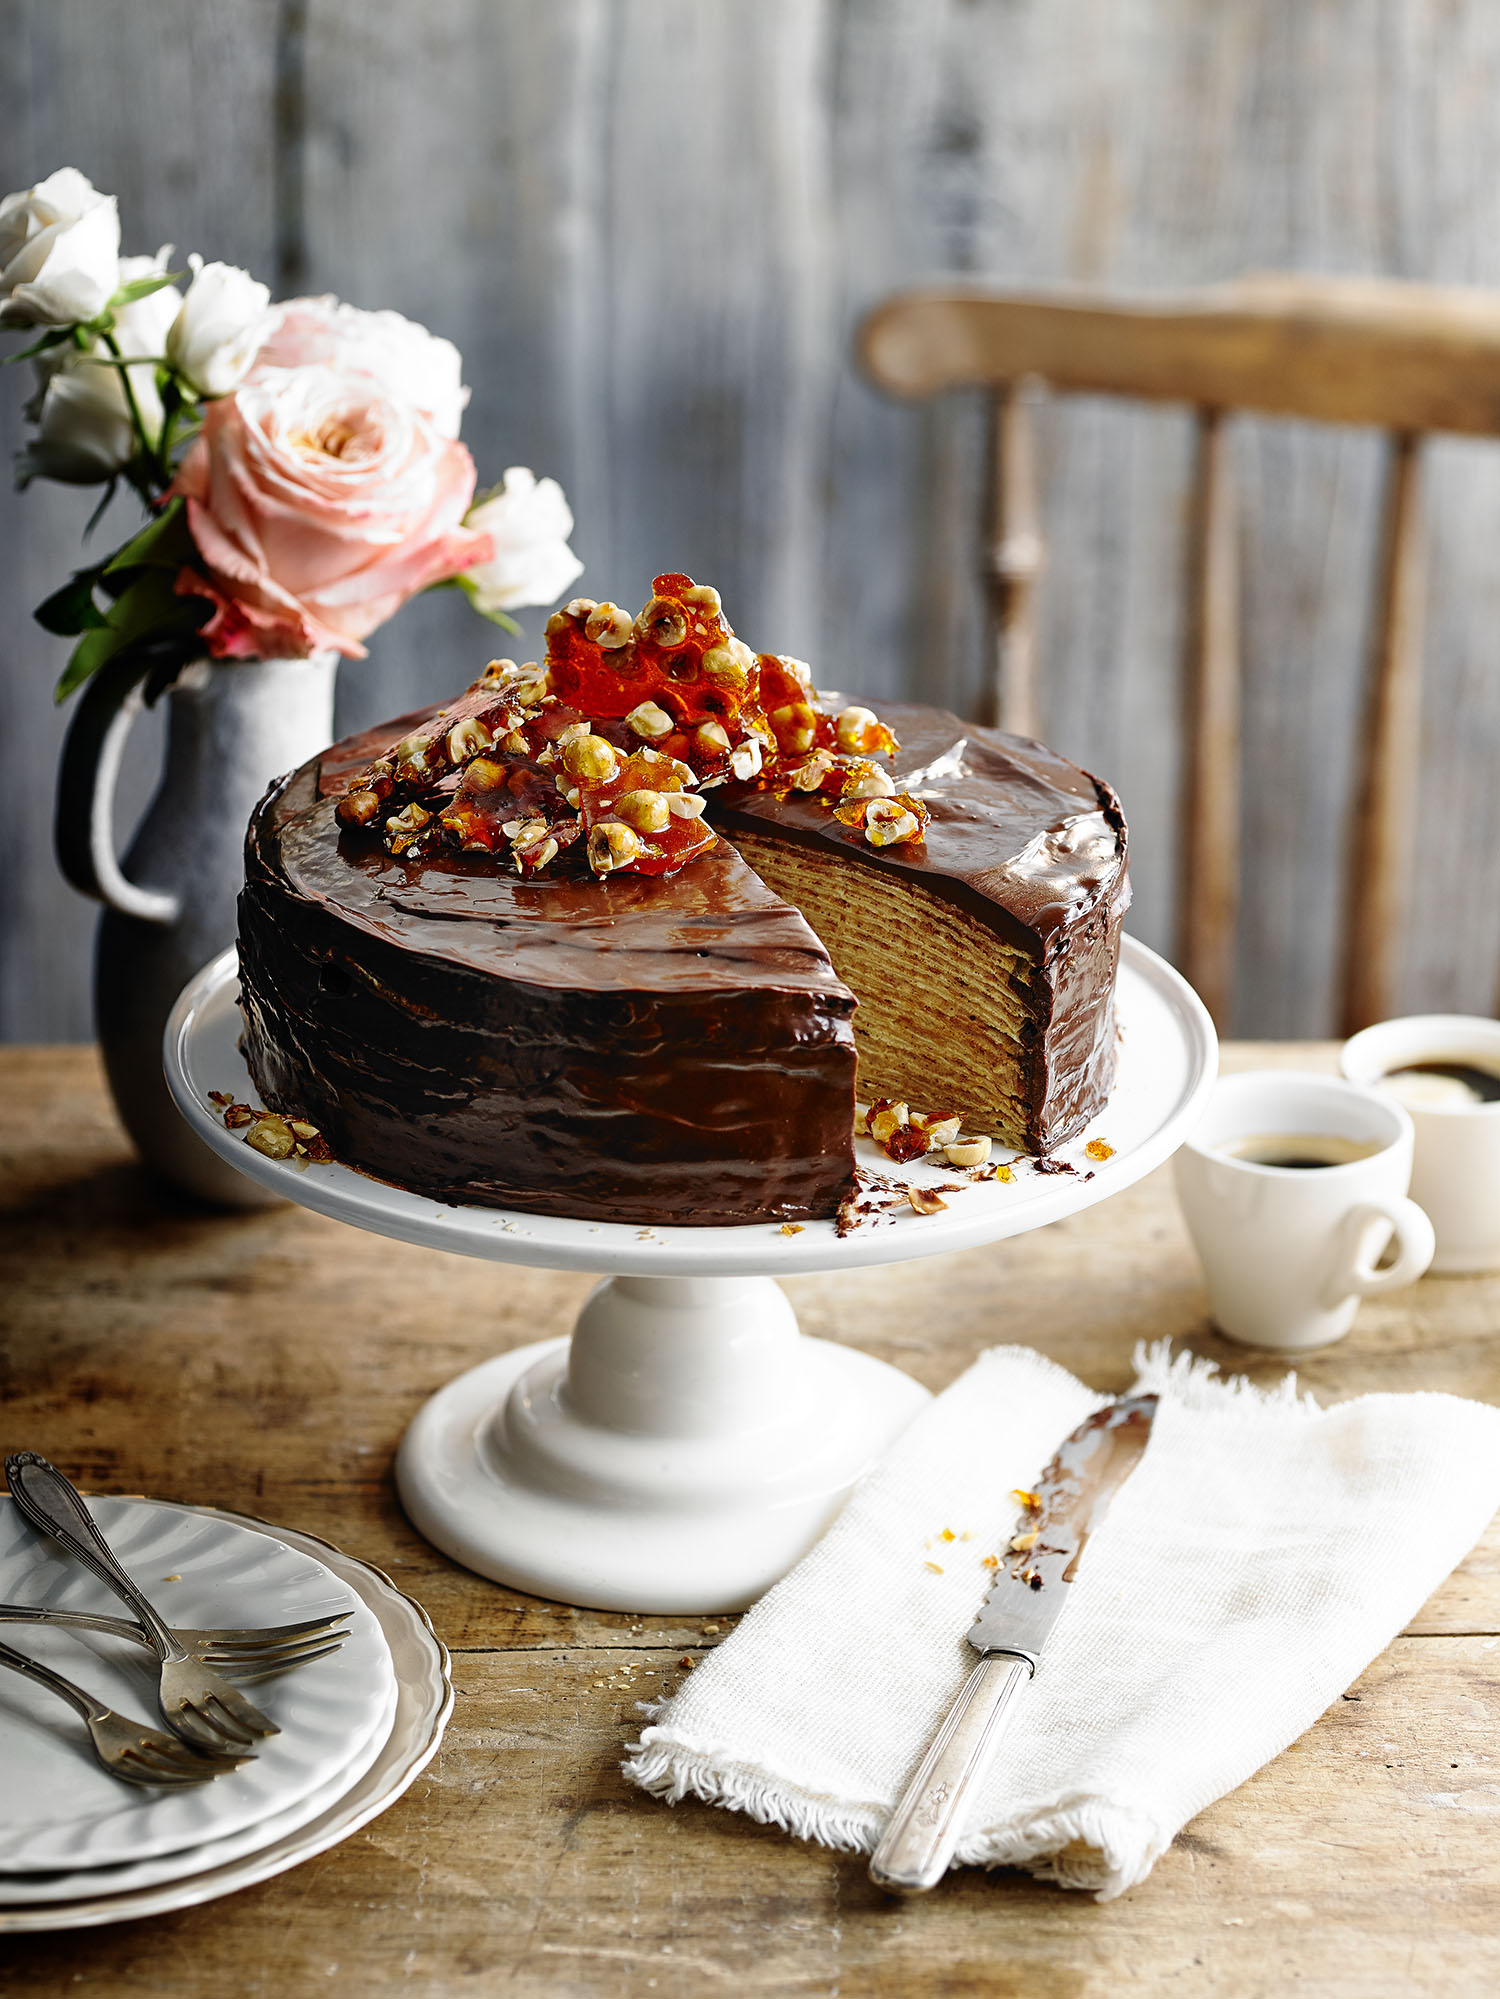 Chocolate Cinnamon Crepe Cake Photograph Alex Luck Prop Styling Davina Perkins